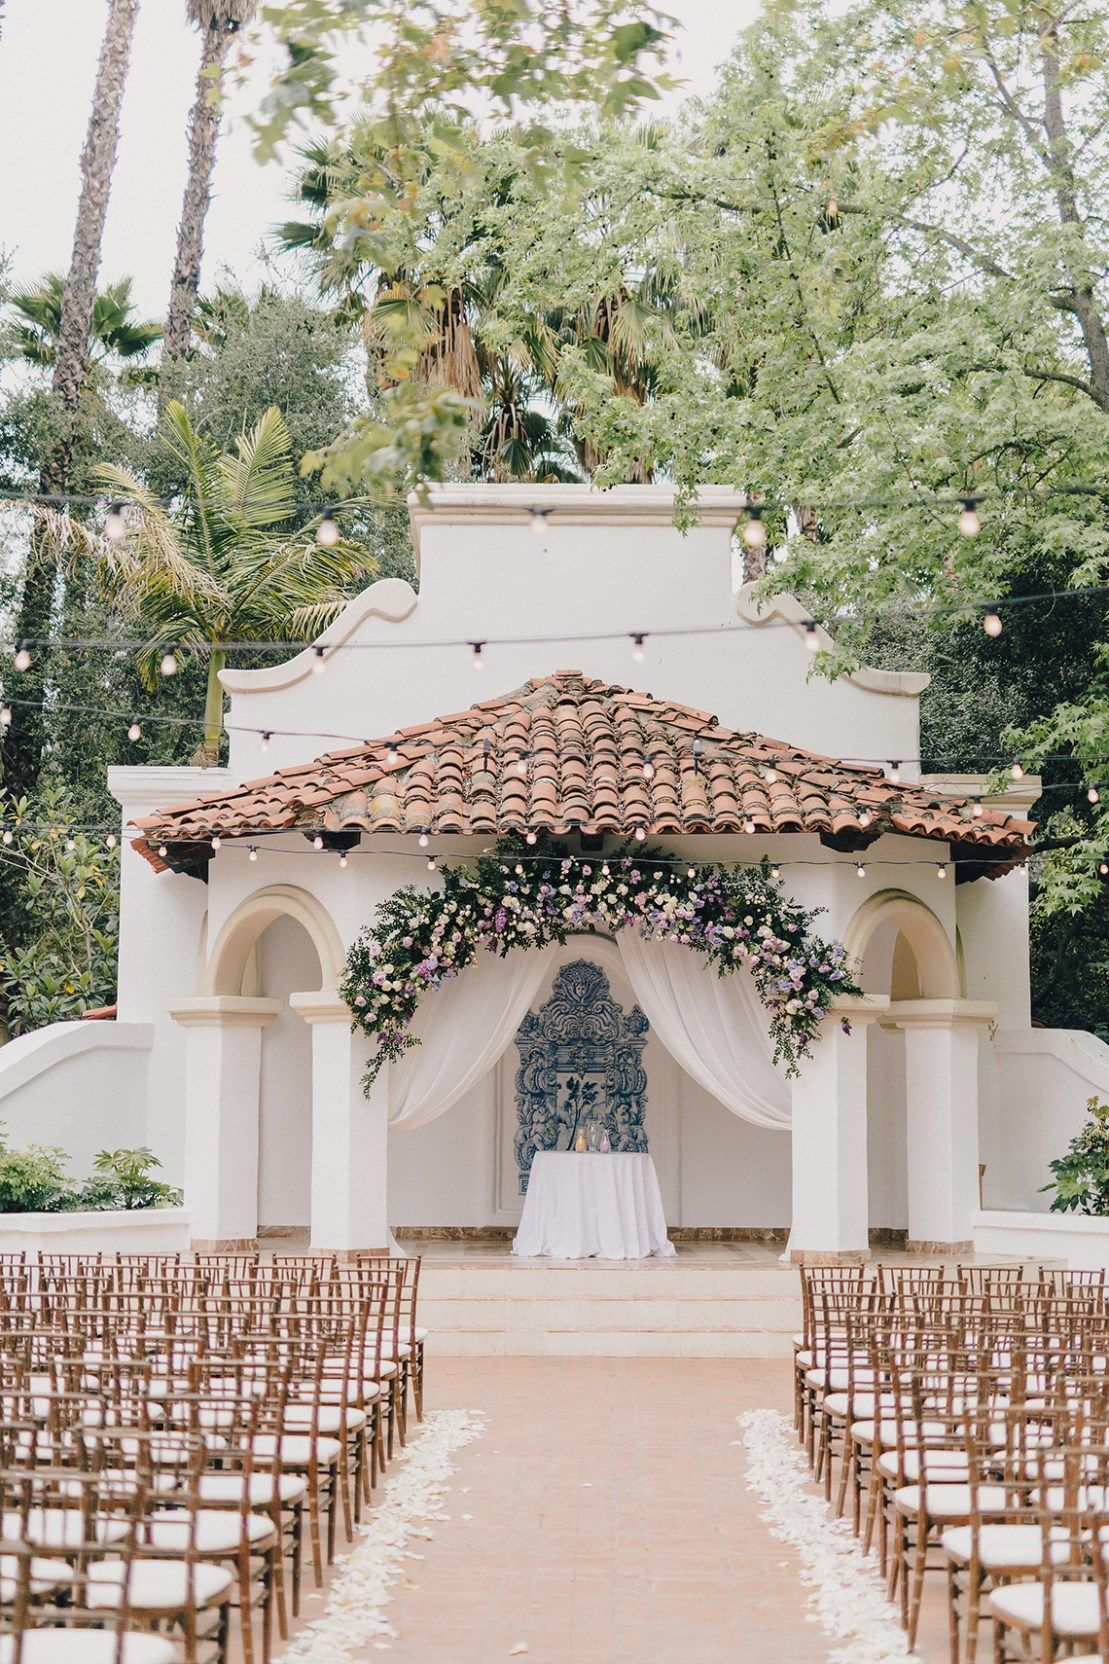 This California Wedding Venue Will Charm Couples Looking For